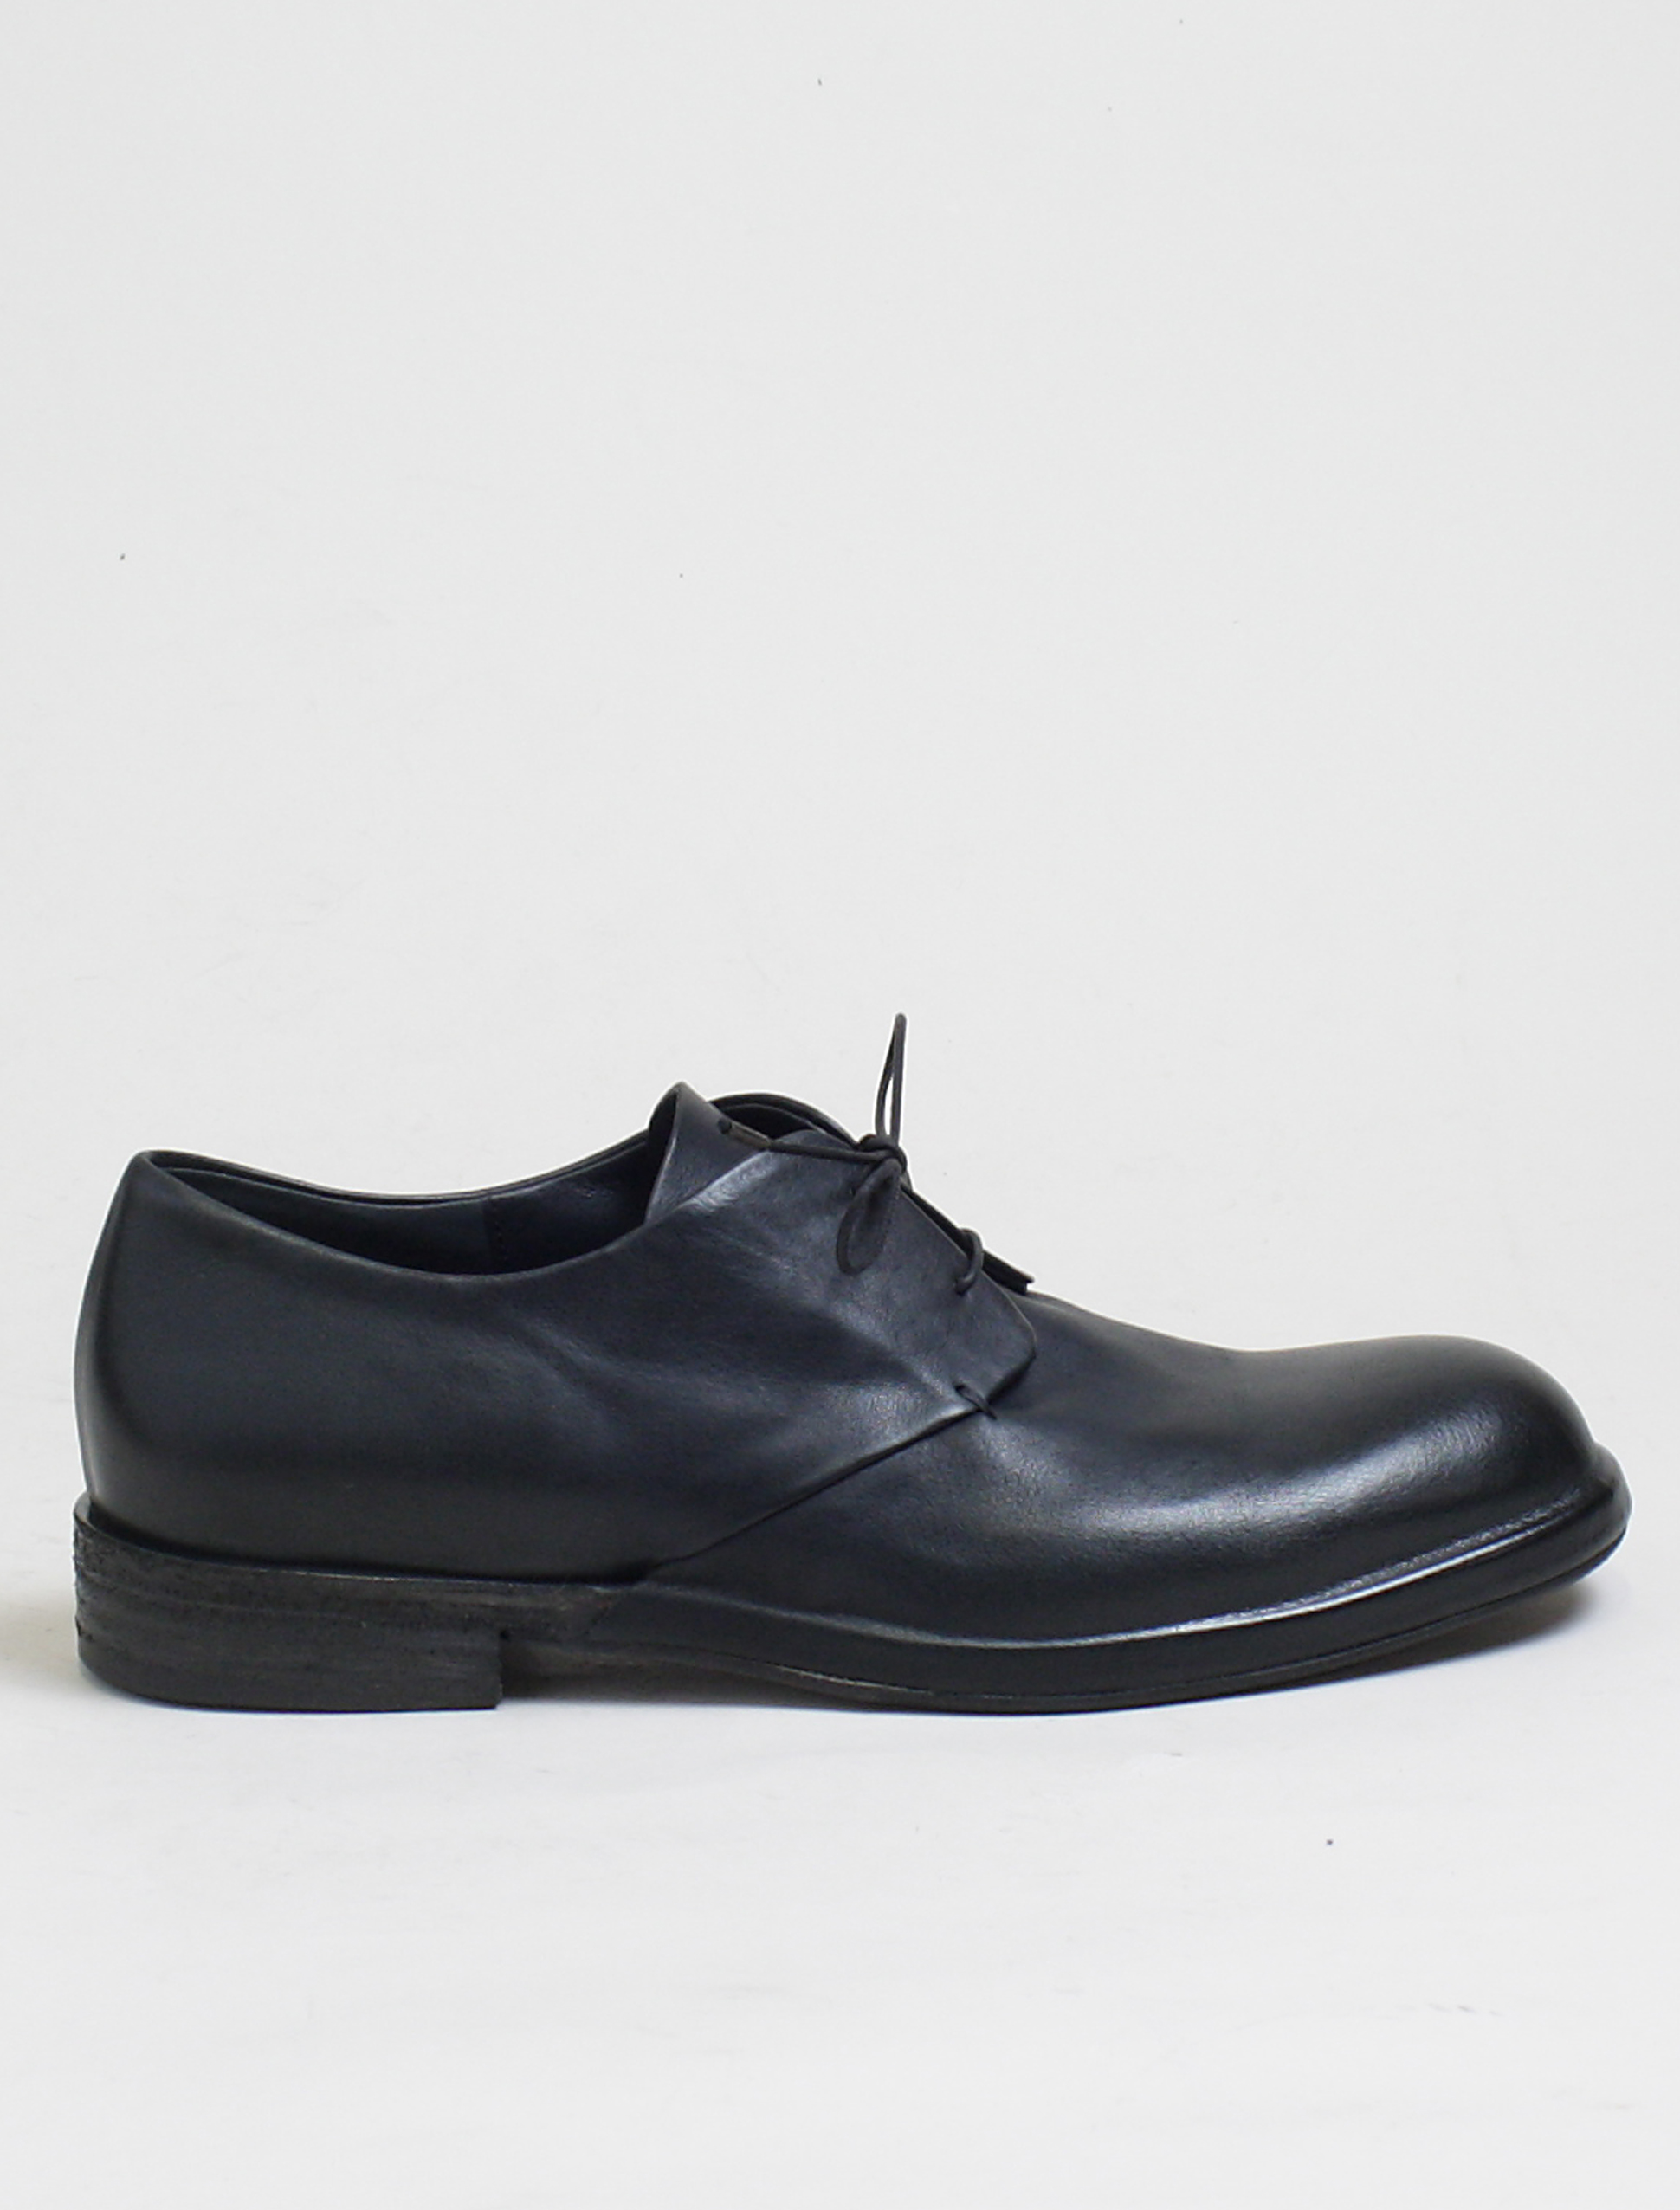 Roberto Del Carlo Old nero lace-up shoe